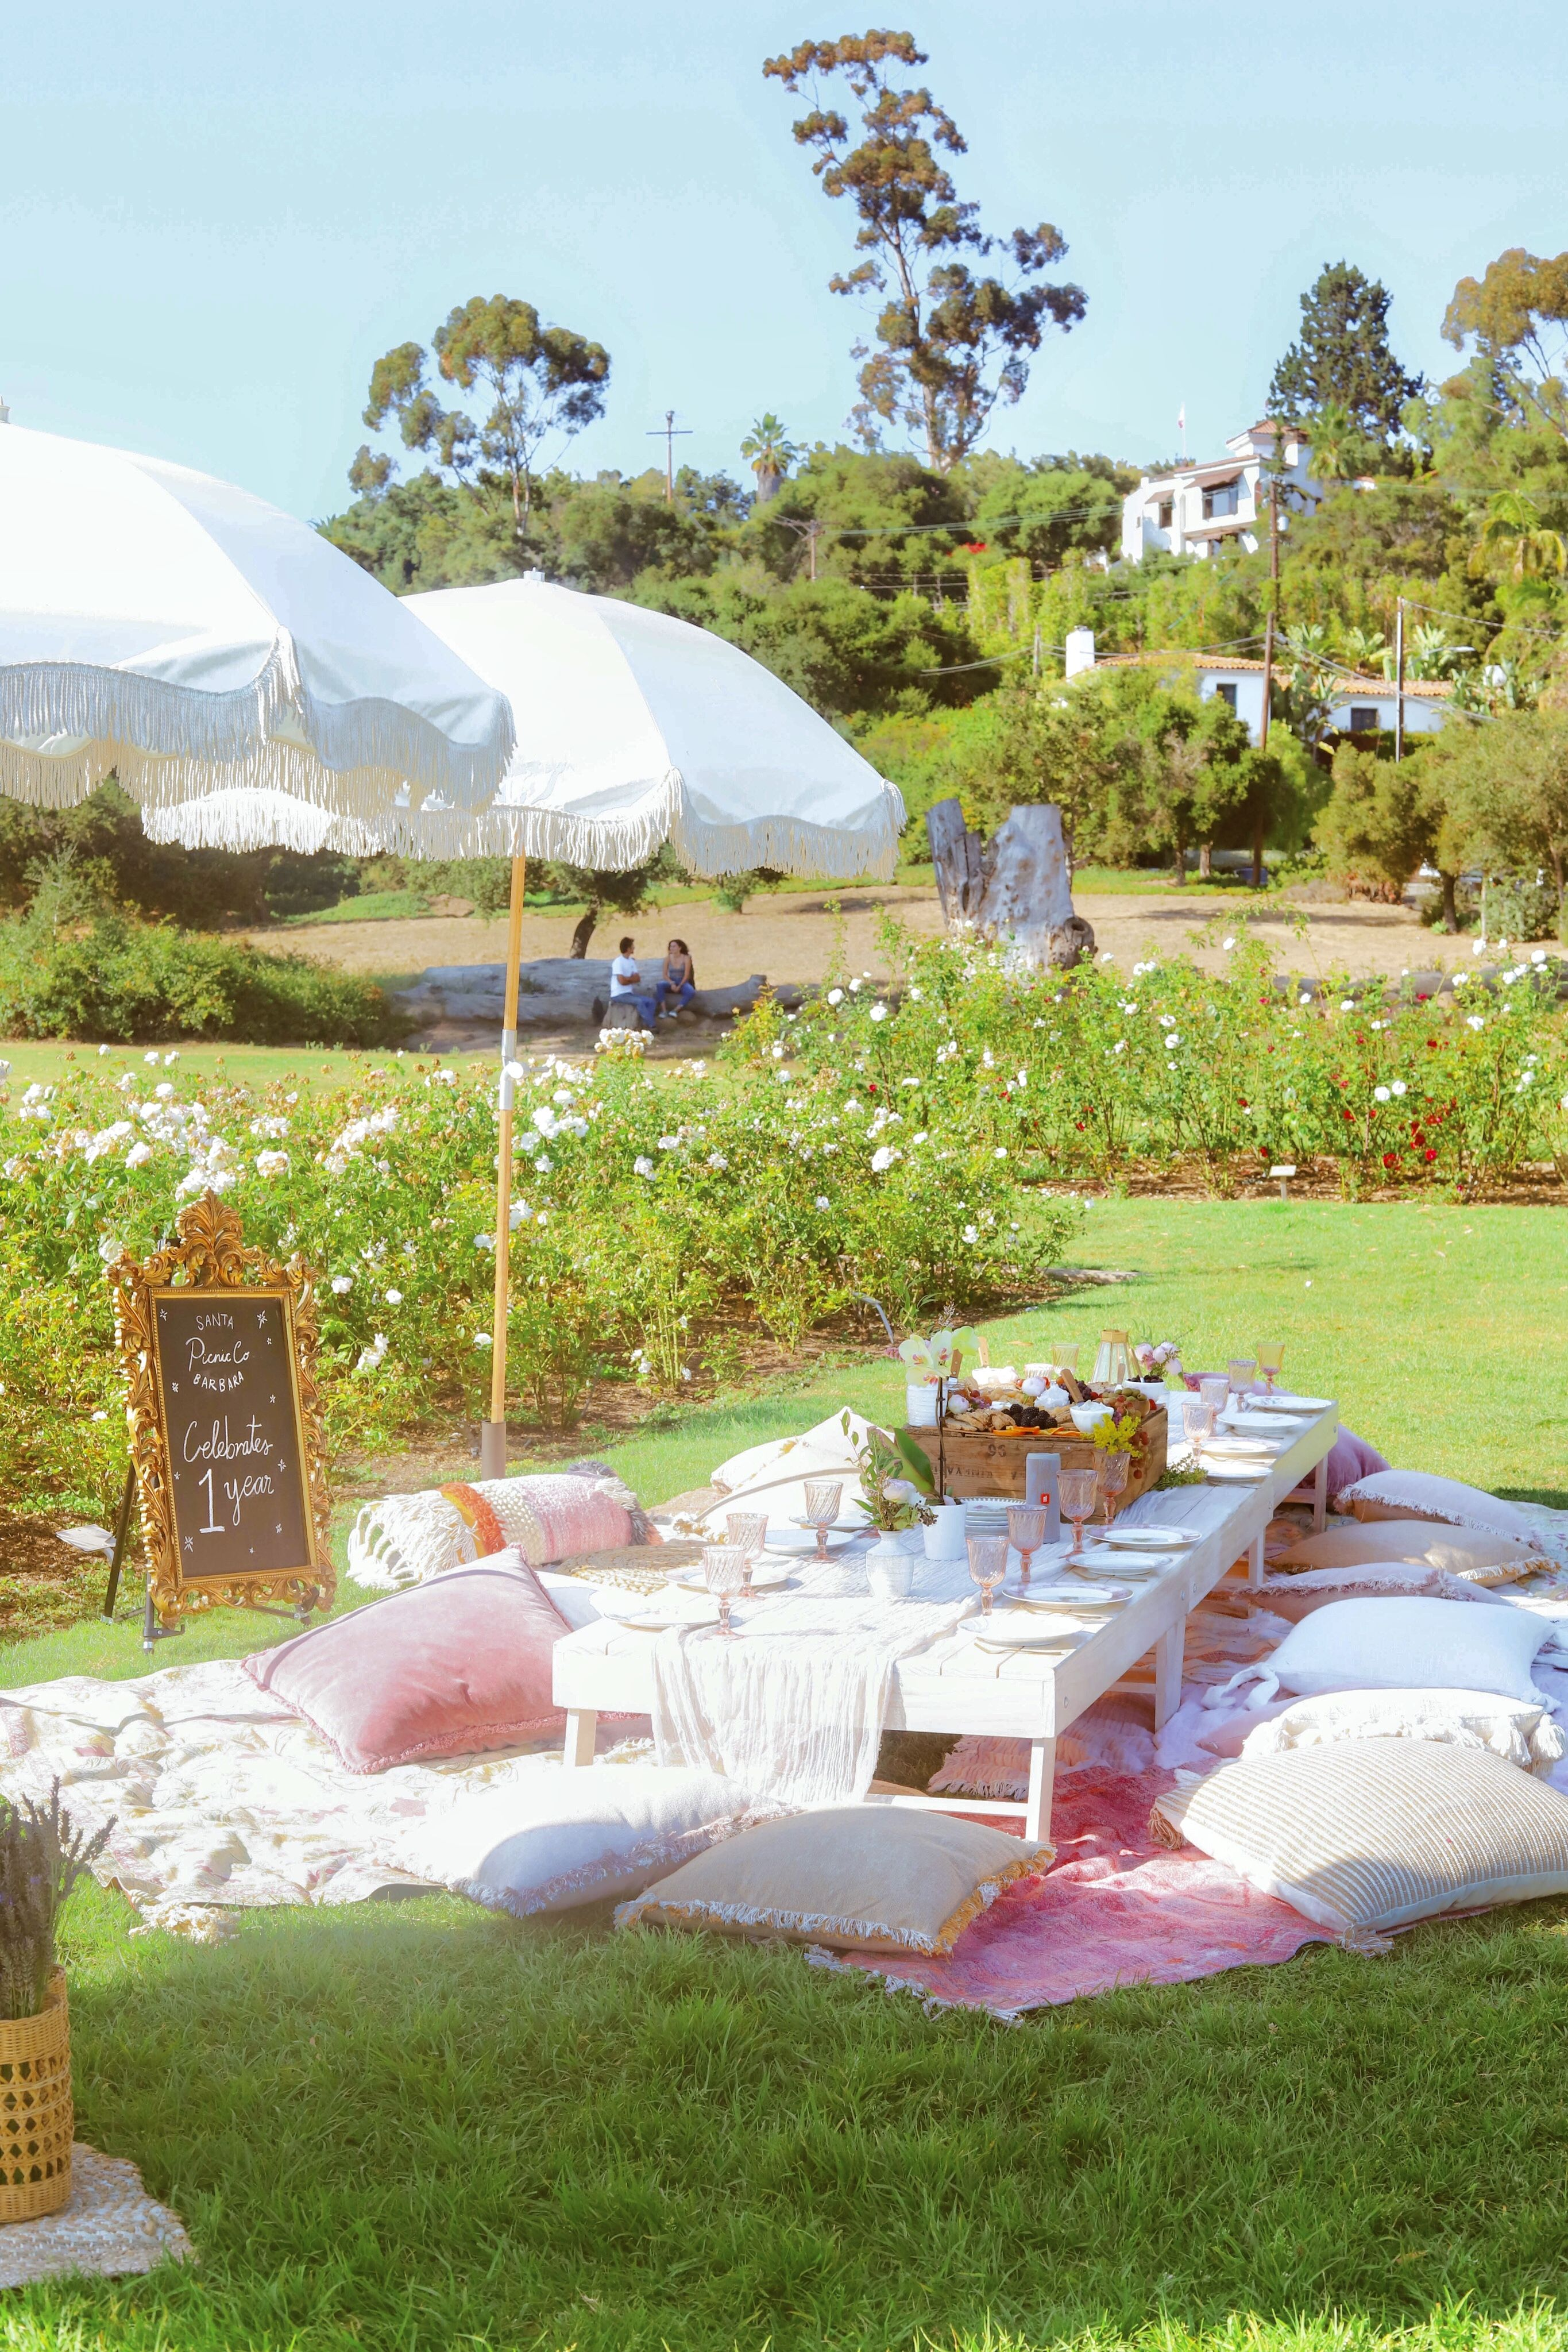 Boho Chic Picnic Party At The Mission Rose Garden In Santa Barbara Kids Picnic Parties Picnic Party Garden Picnic